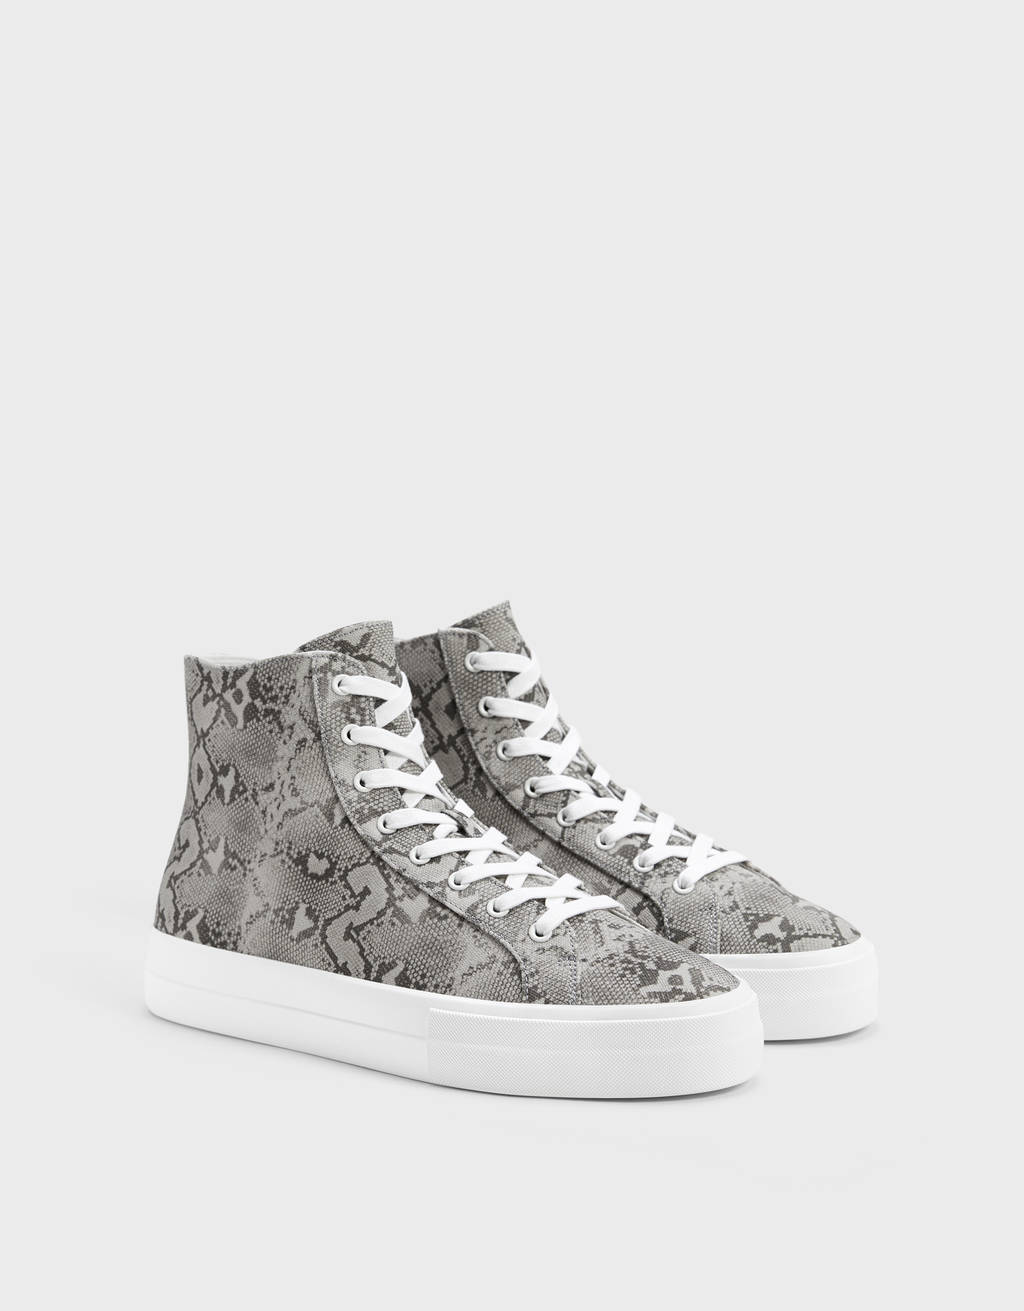 Men's animal print high-top trainers